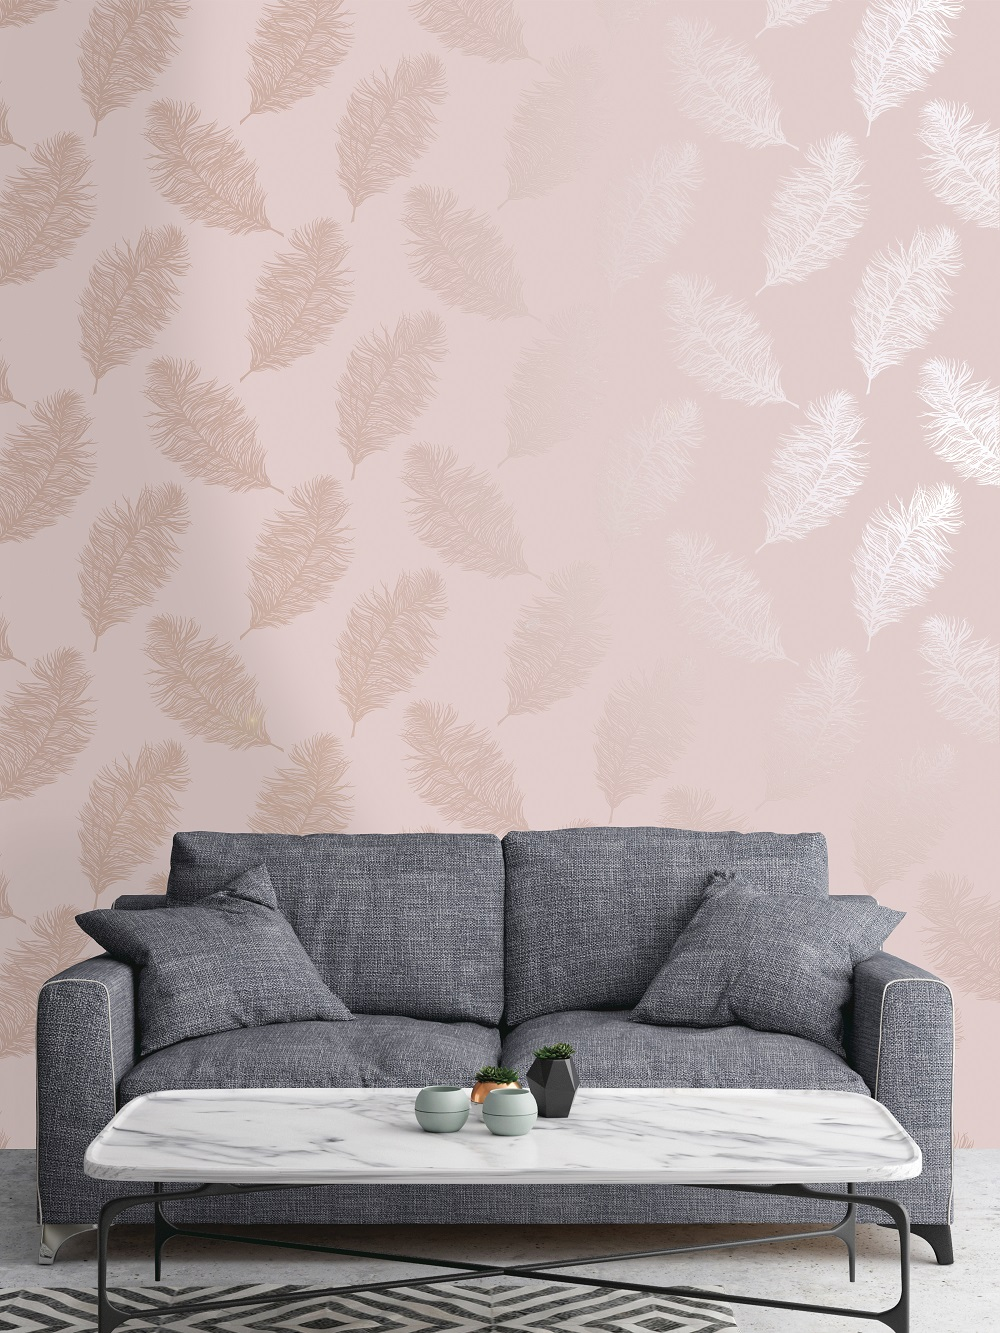 20 Top Tips For 2020: Choosing The Right Wallpaper.